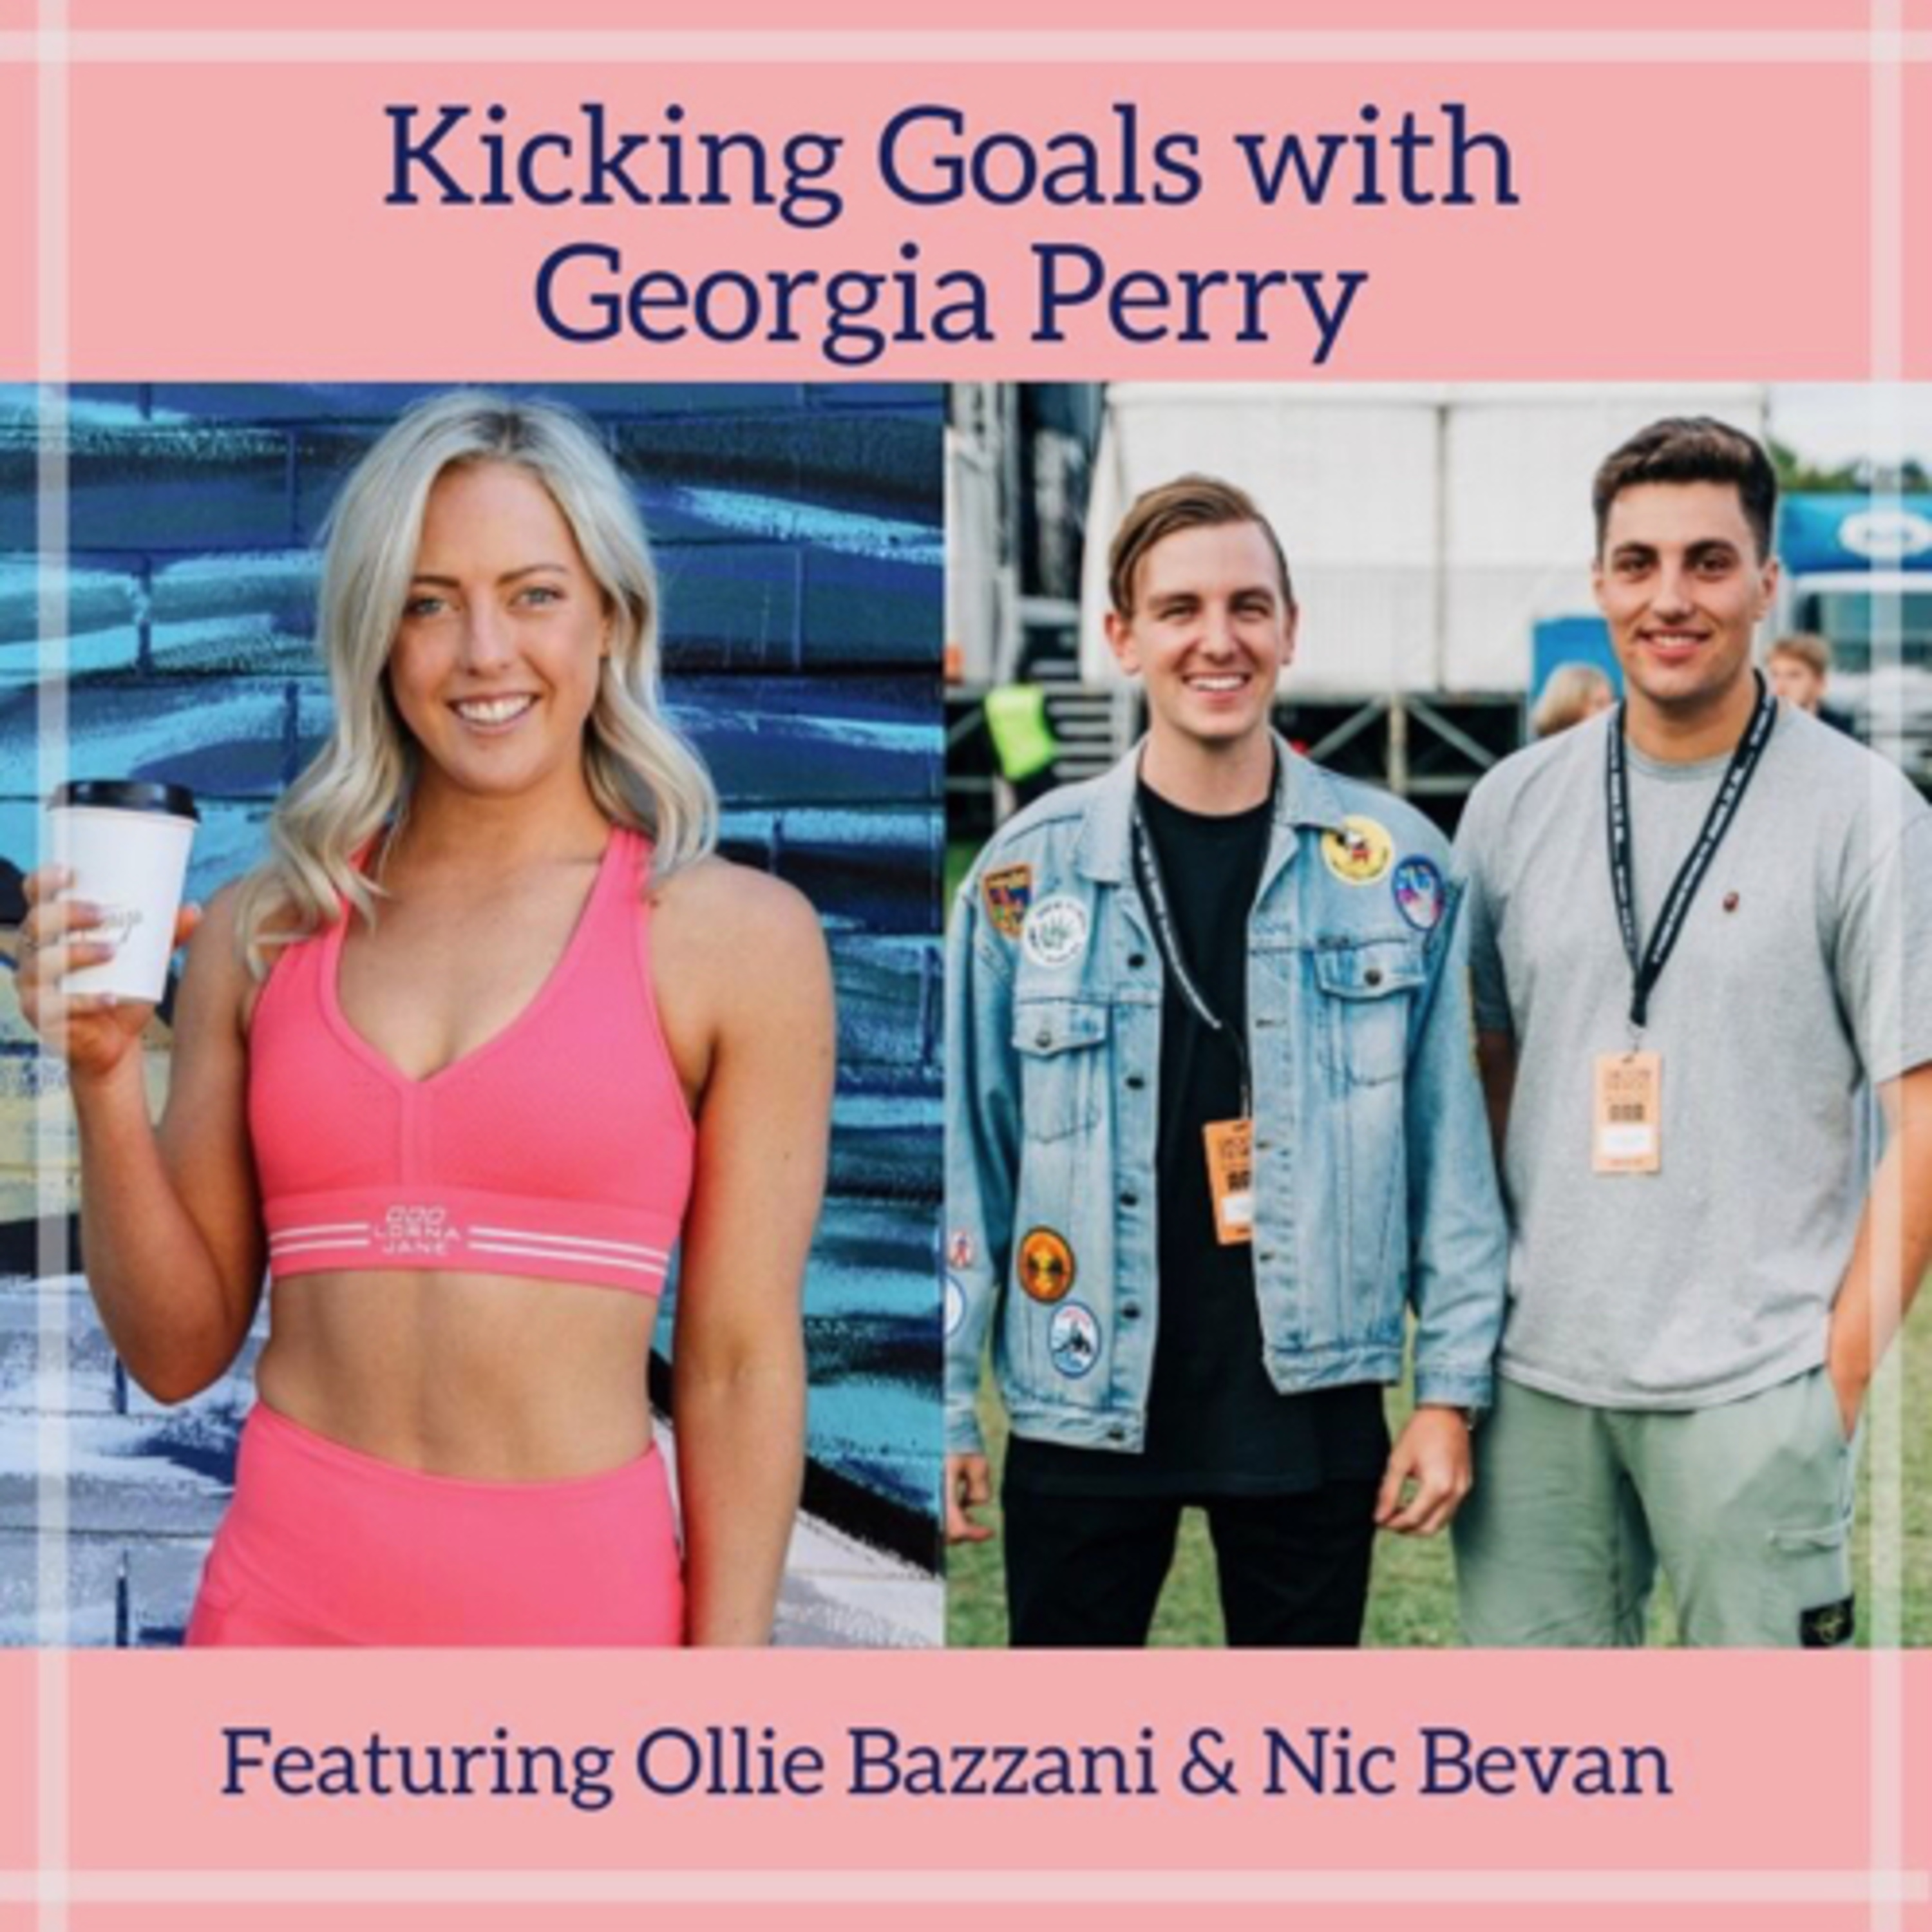 The World of Entrepreneurship & Small Business with Ollie Bazzani & Nic Bevan